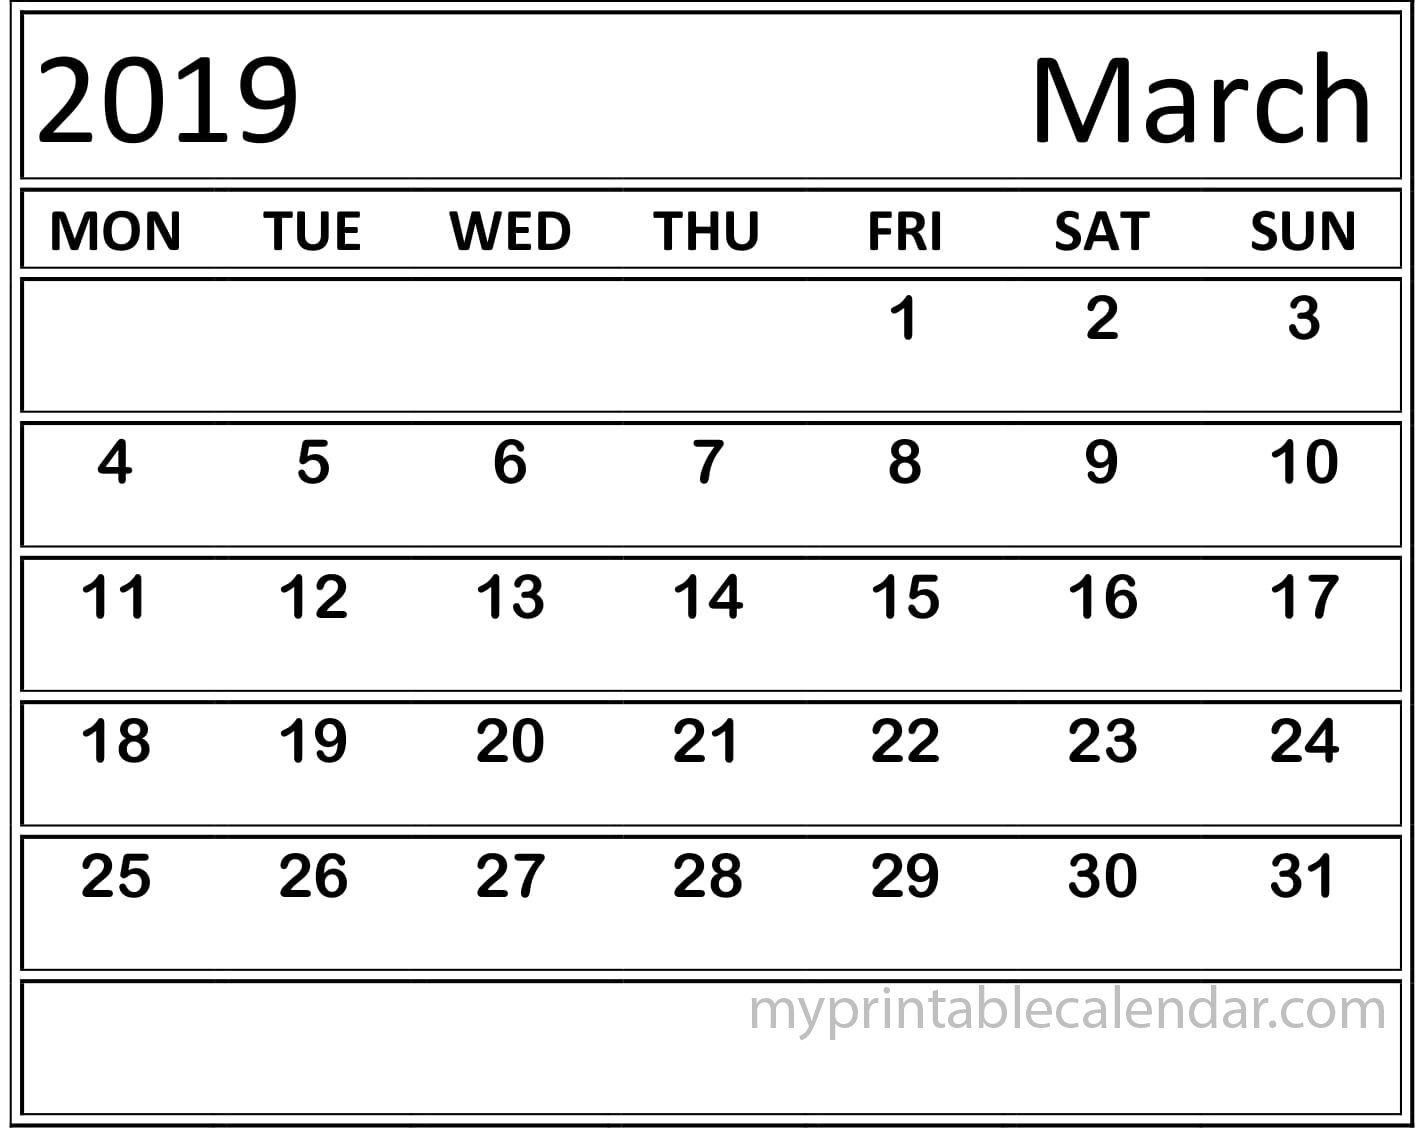 March 2019 Calendar Template With Lines | March 2019 within Printable Calendar With Lines